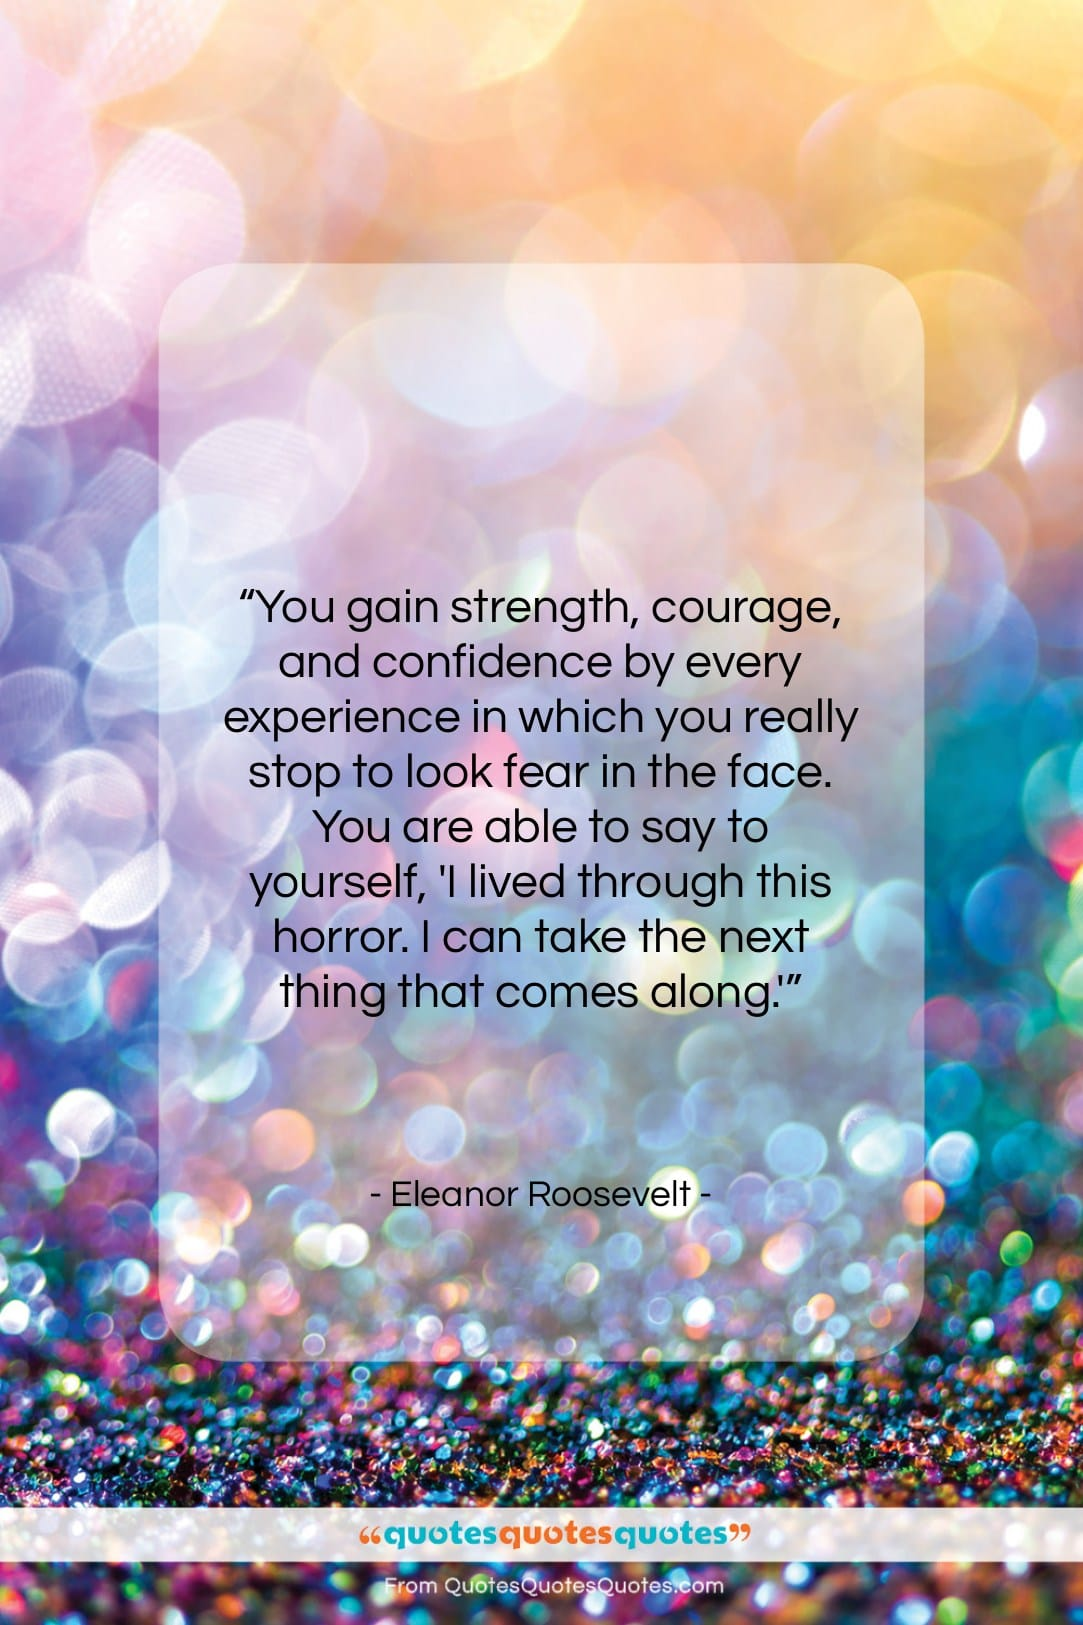 Get The Whole Eleanor Roosevelt Quote You Gain Strength Courage